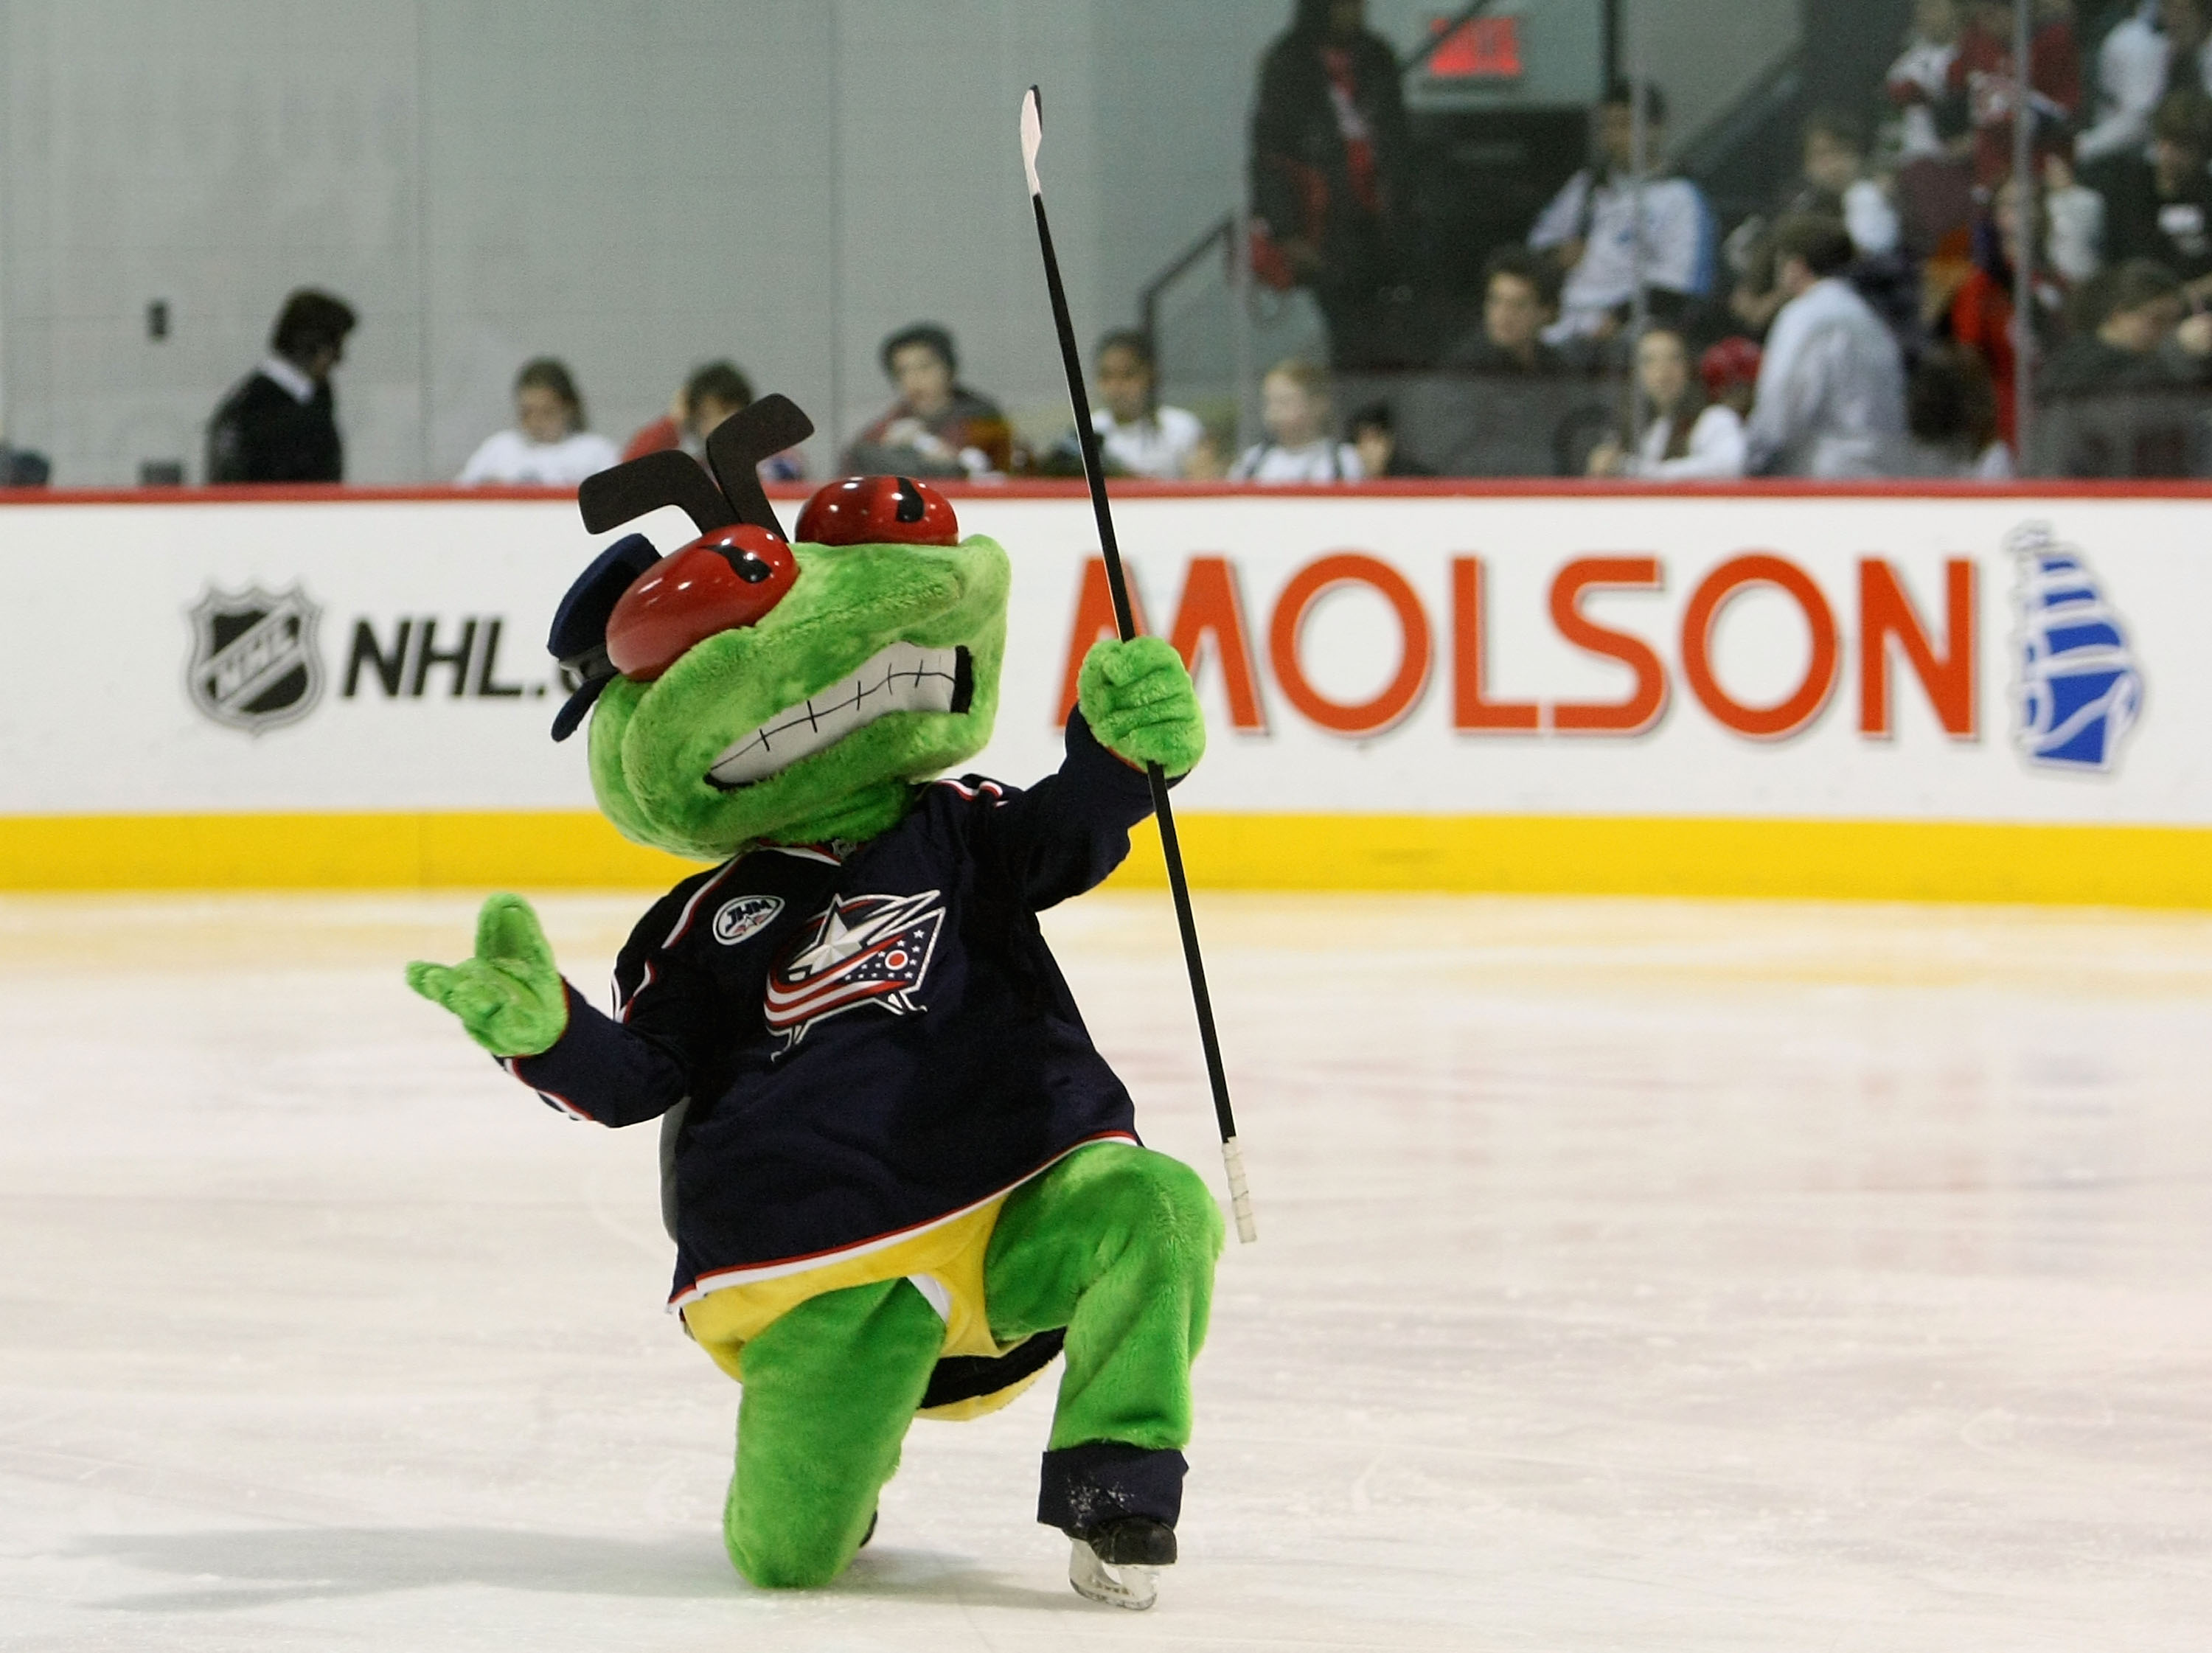 MONTREAL - JANUARY 25:  Columbus Blue Jackets mascot, Stinger performs on the ice during the NHL All Star Mascot Breakfast at the Bell Centre Sports Complex on January 25, 2009 in Montreal, Canada.  (Photo by Nick Laham/Getty Images)